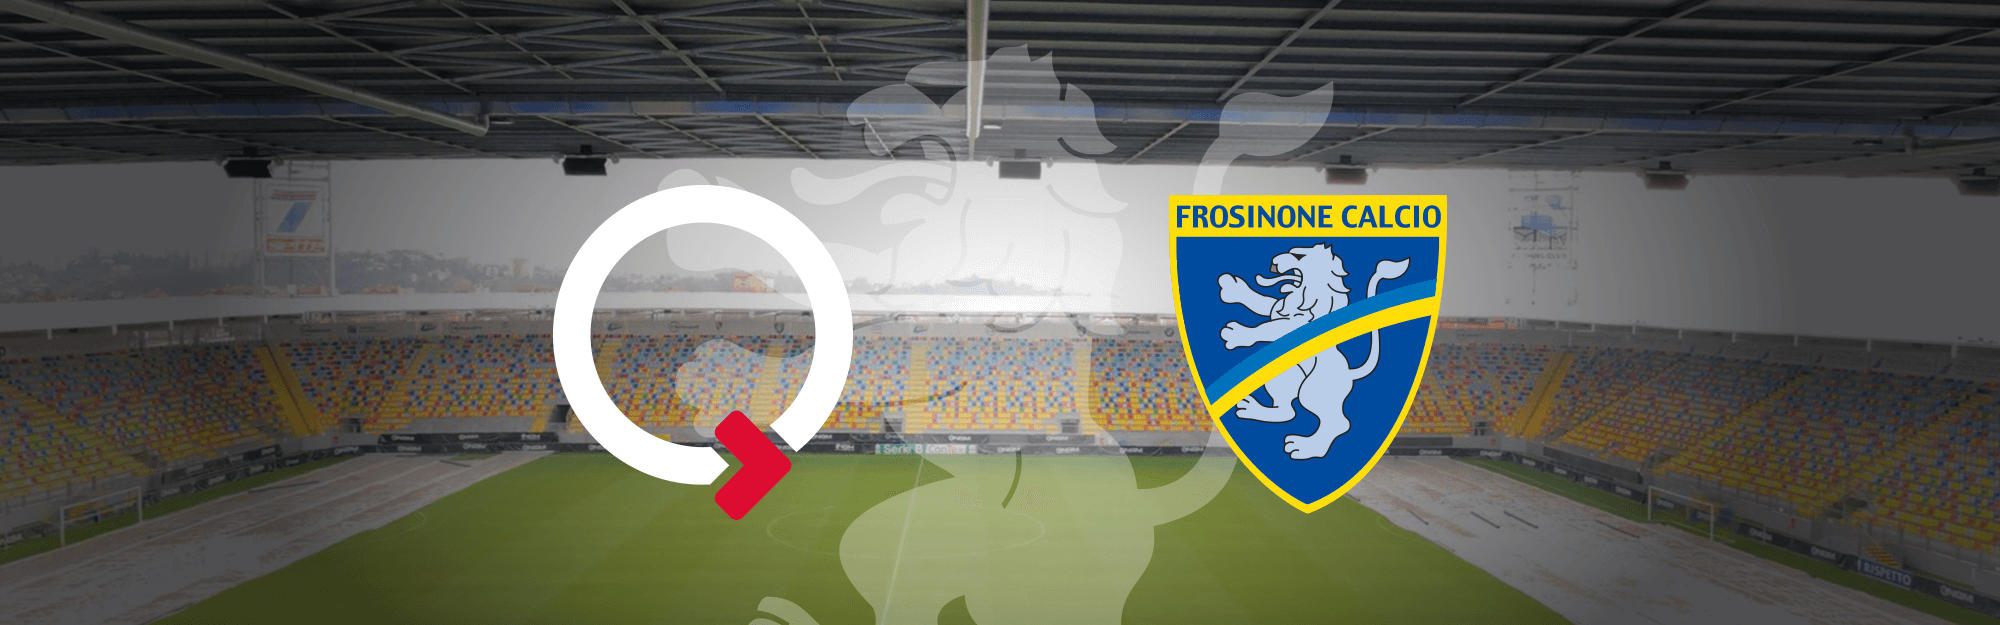 Il Frosinone Calcio sceglie IQUII come Official Digital Partner